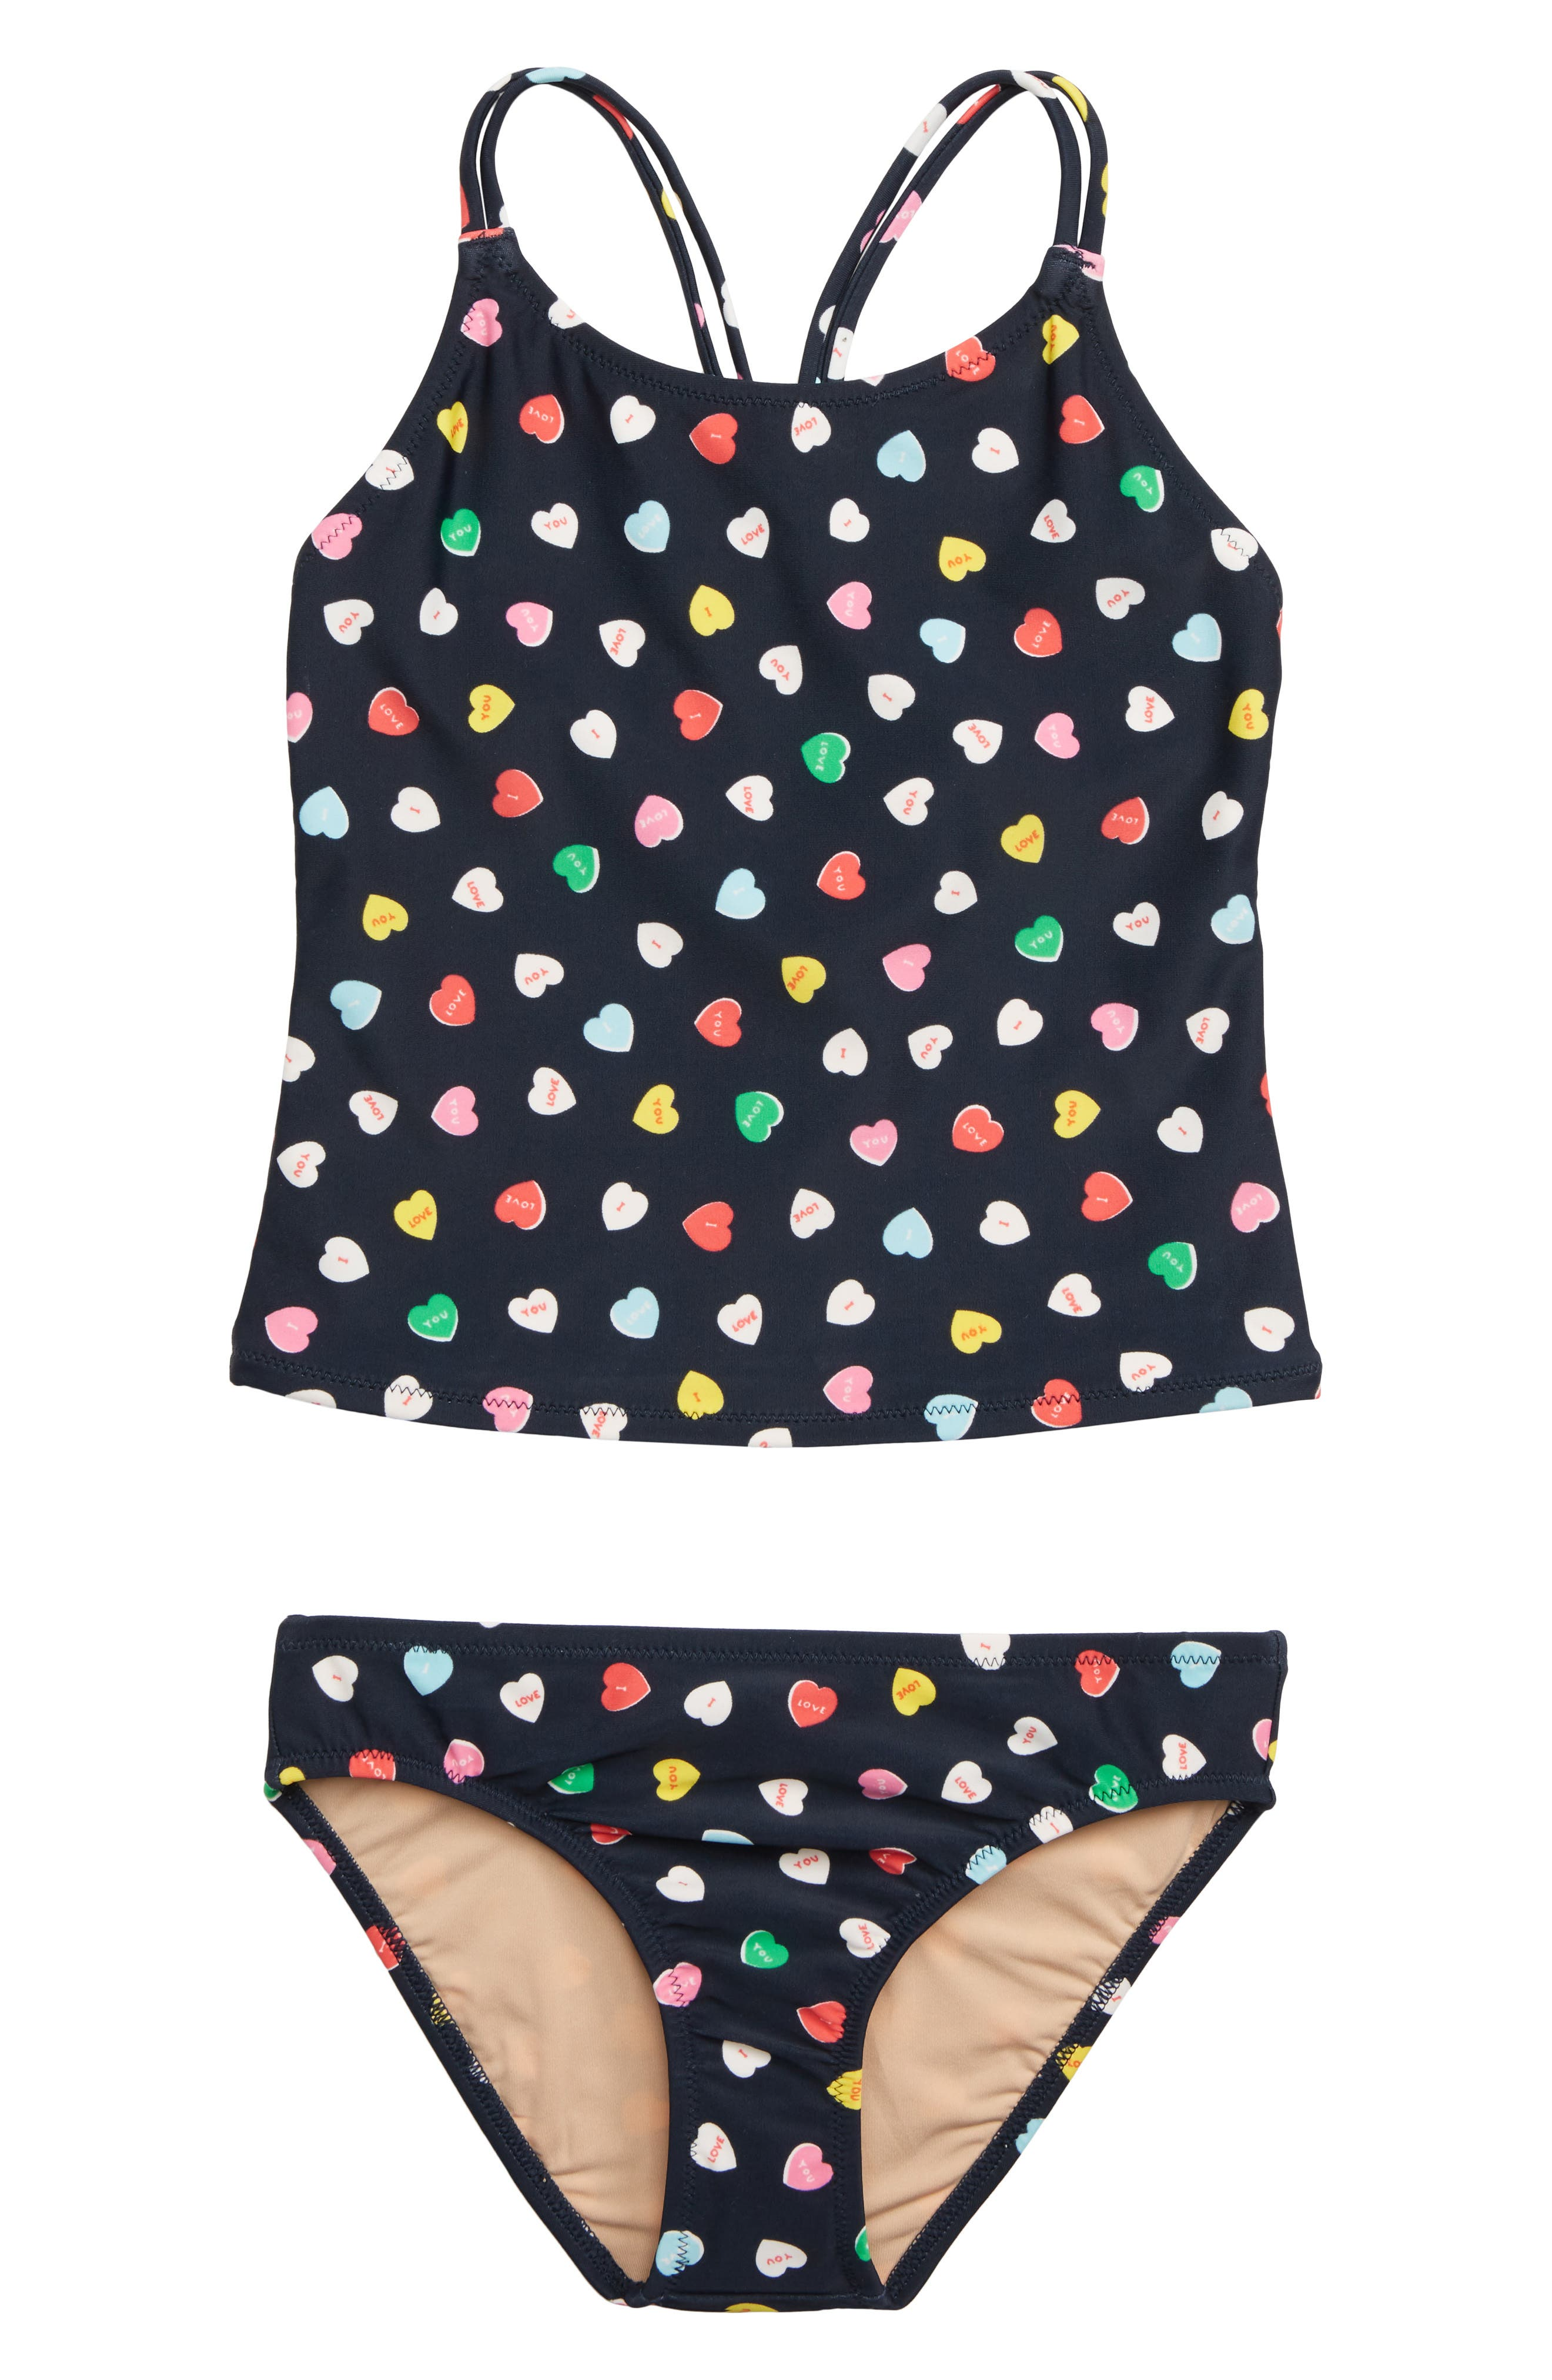 CREWCUTS BY J.CREW, Tankini Two-Piece Swimsuit, Main thumbnail 1, color, PINK RED MULTI WX3623